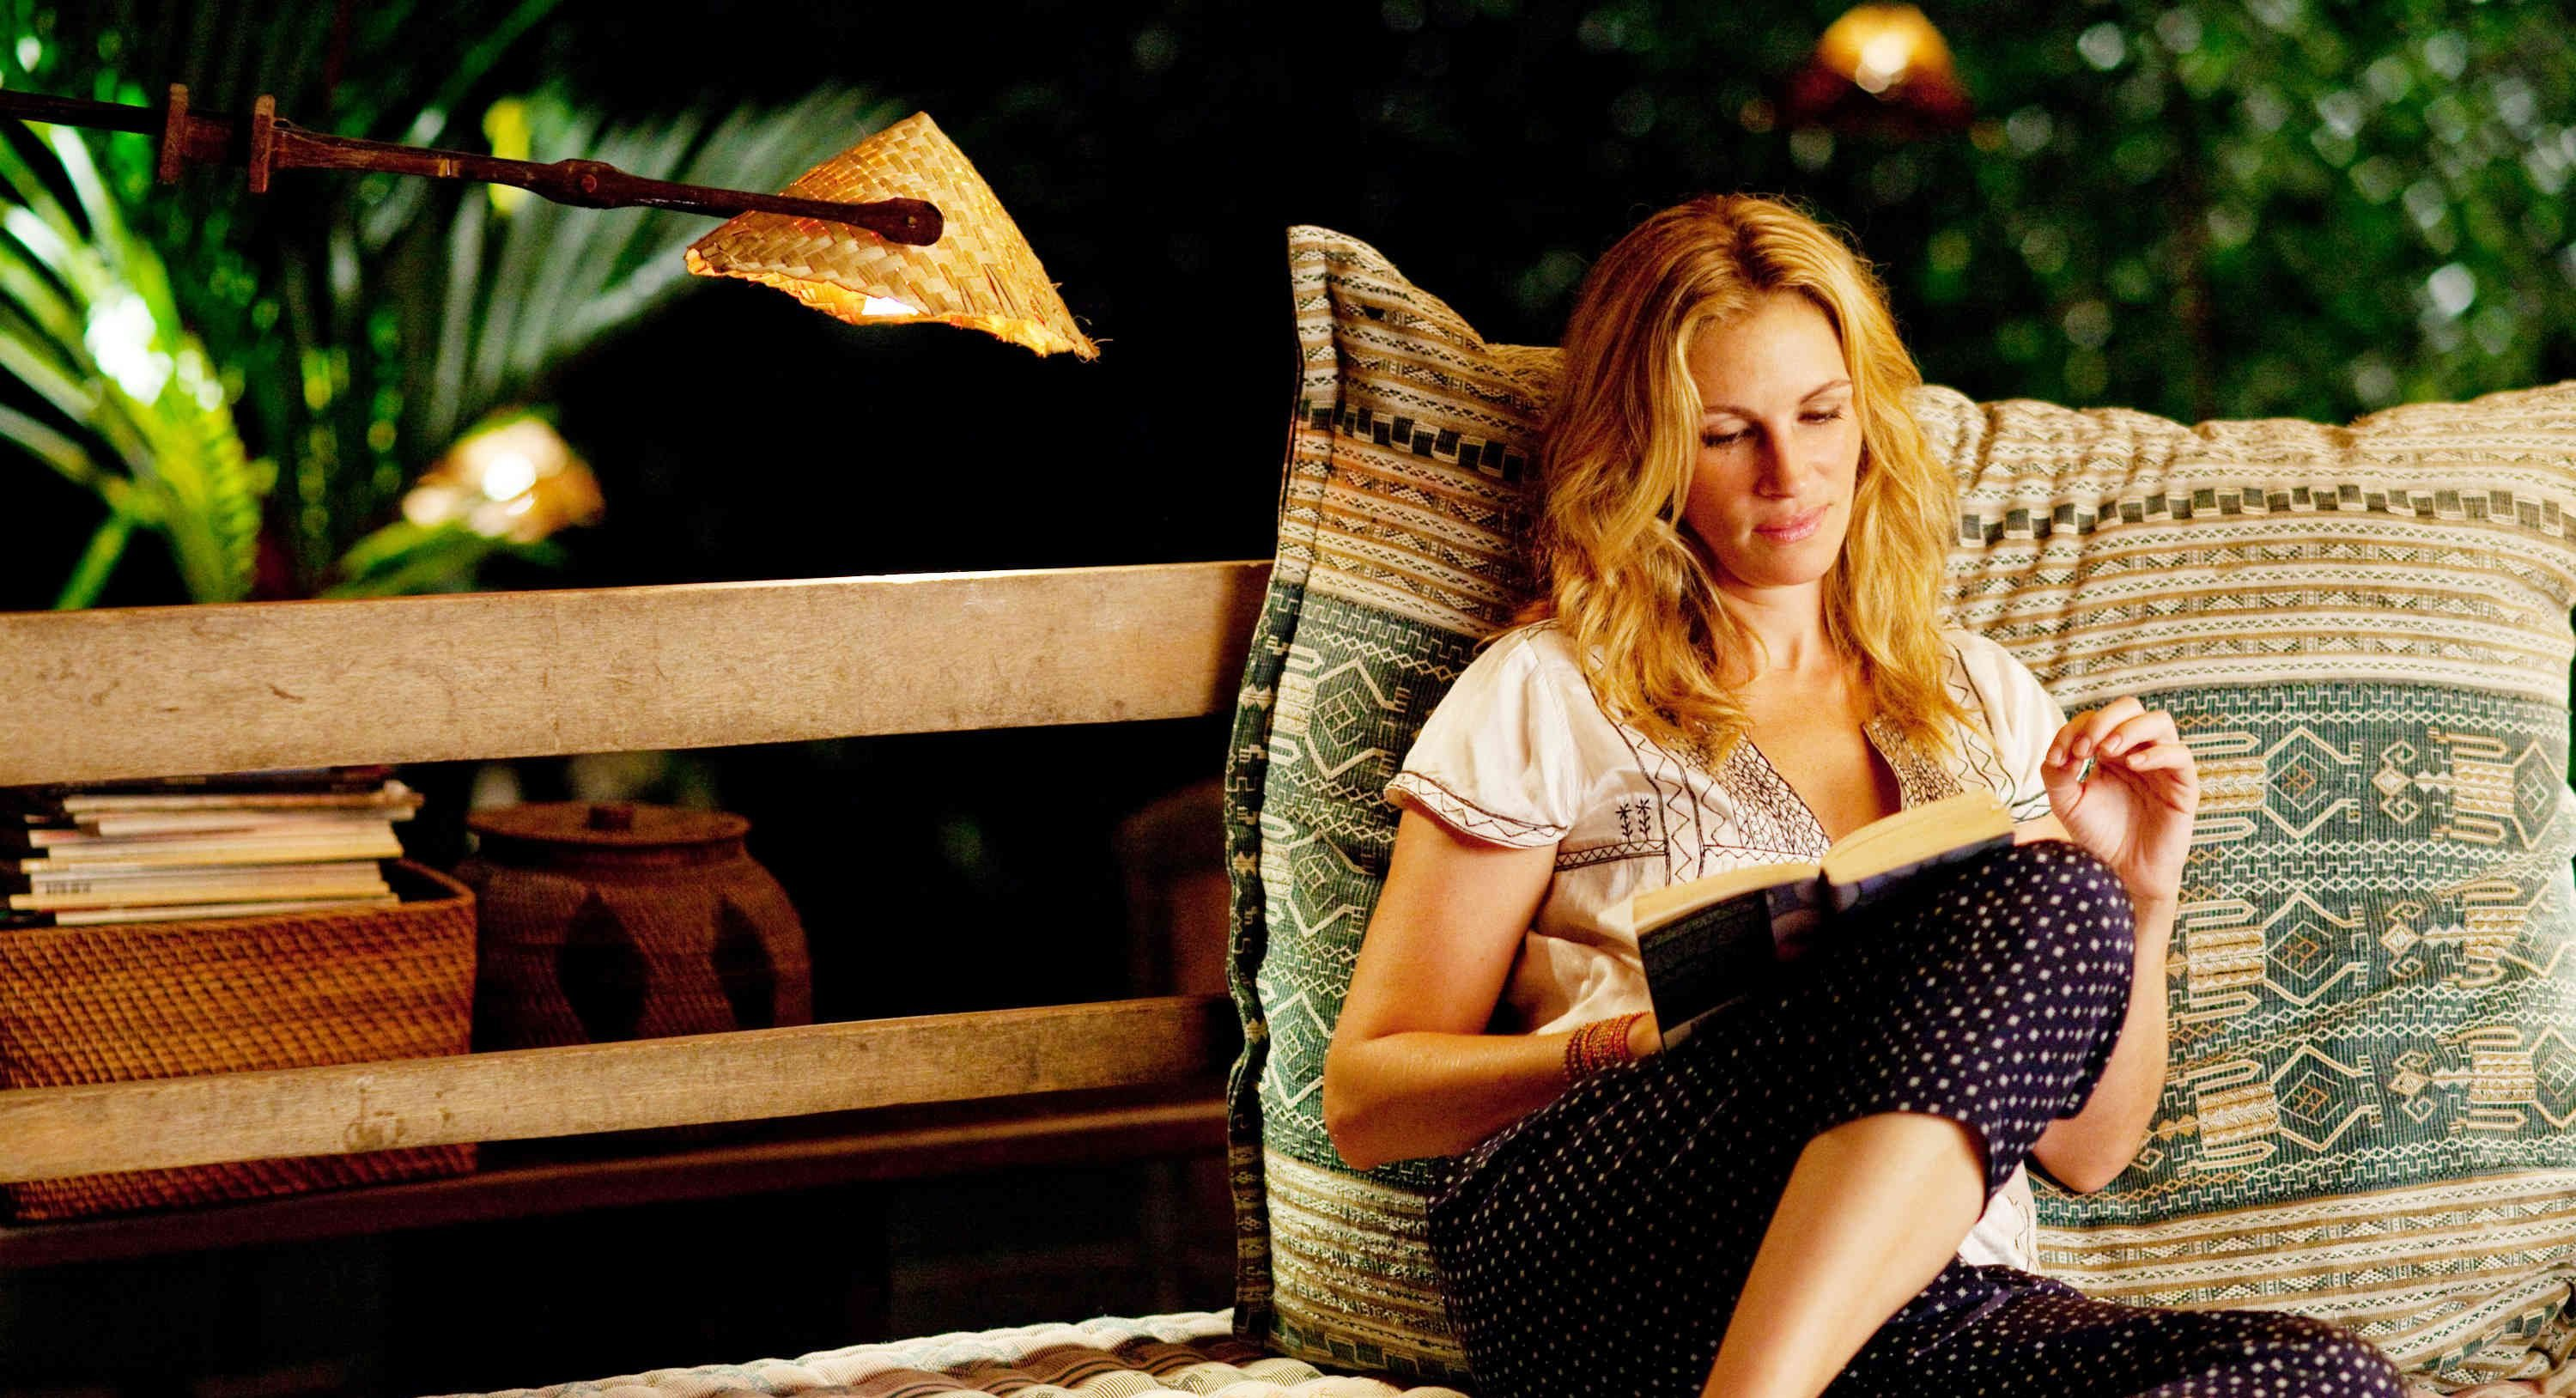 An image from Eat Pray Love